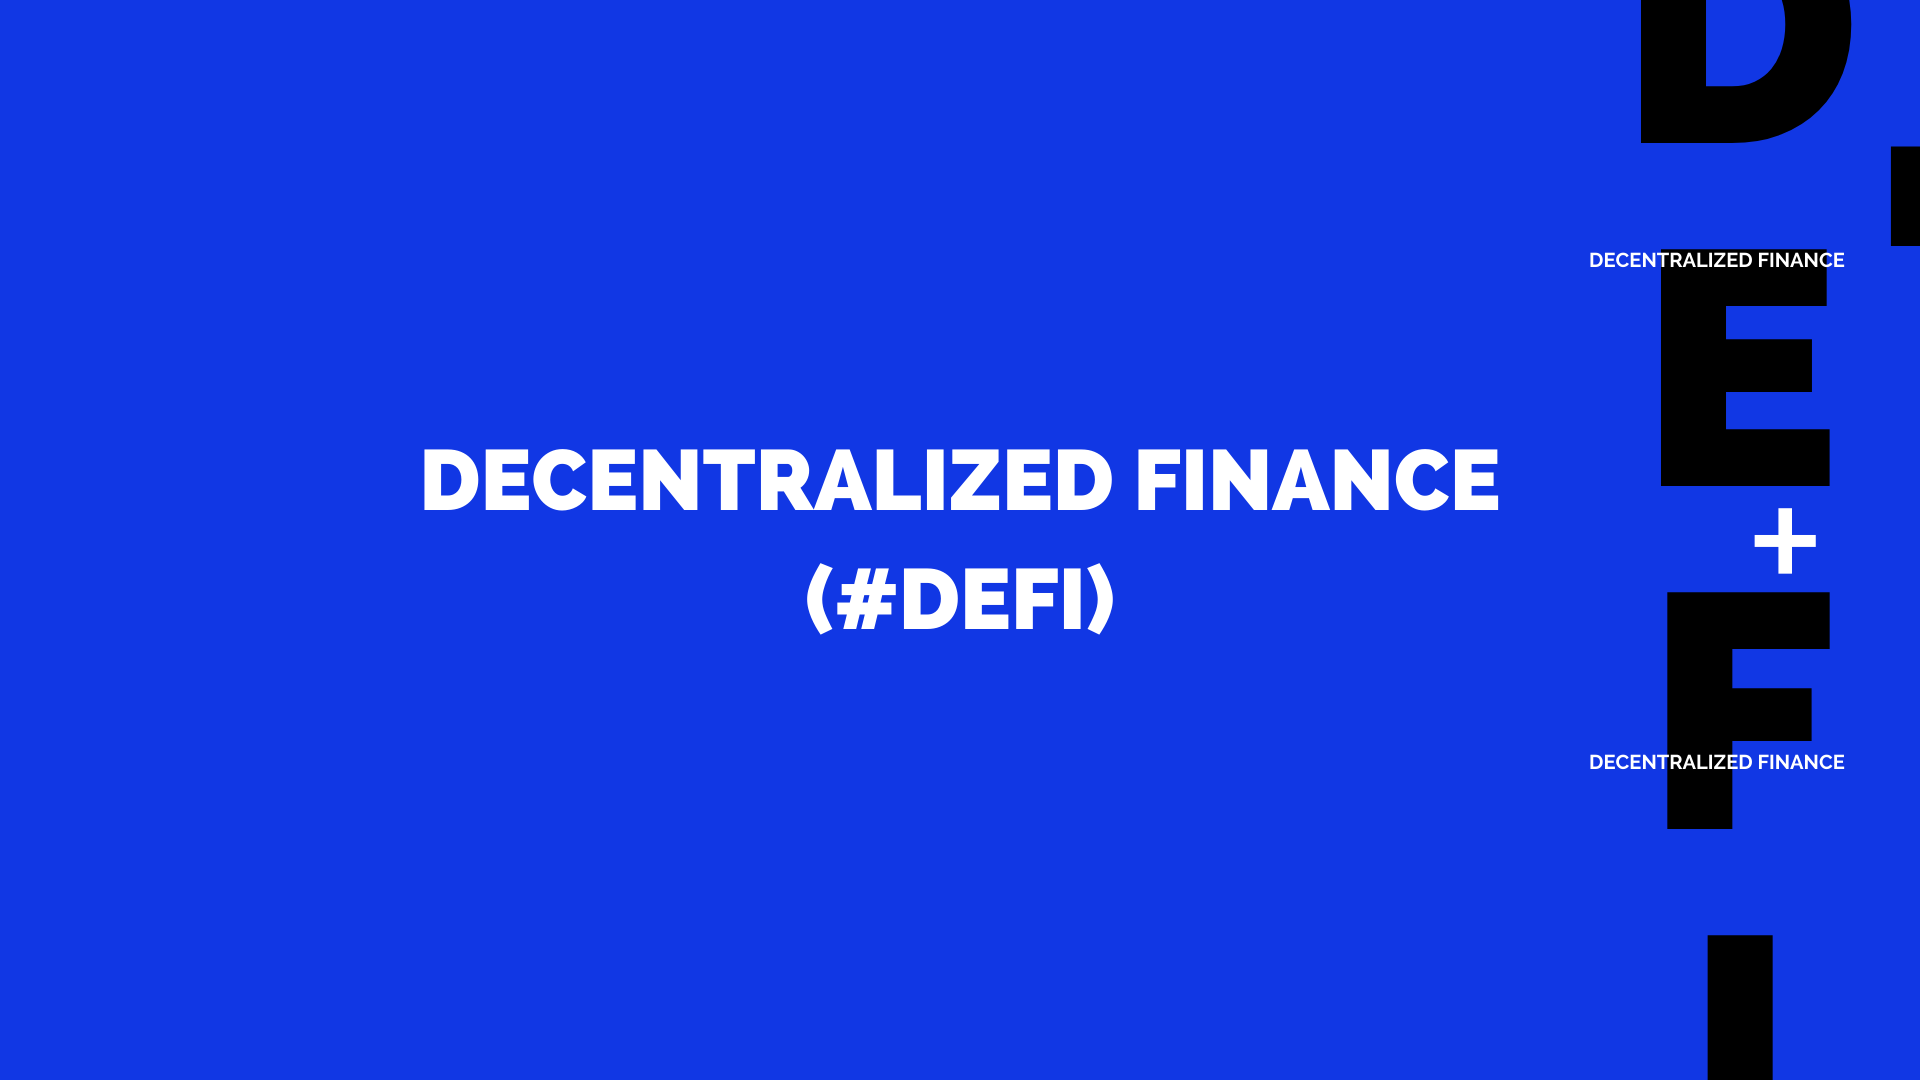 DecentralizedFinance